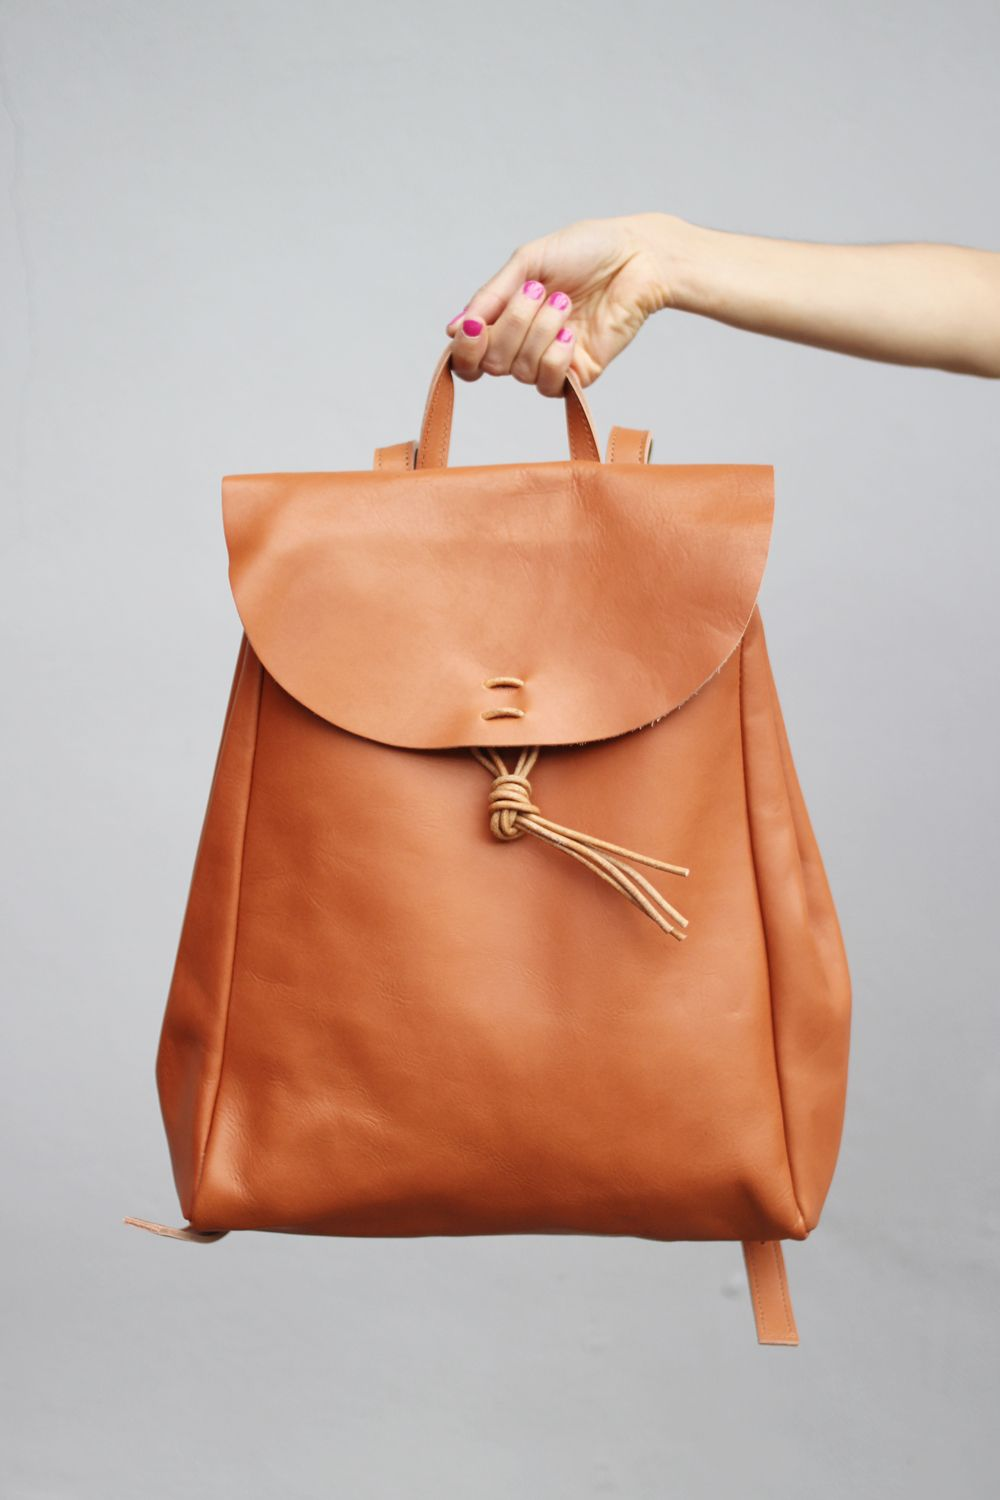 Vintage Style Hand Made Leather Backpack Styling and Photography by THE WHITEPEPPER